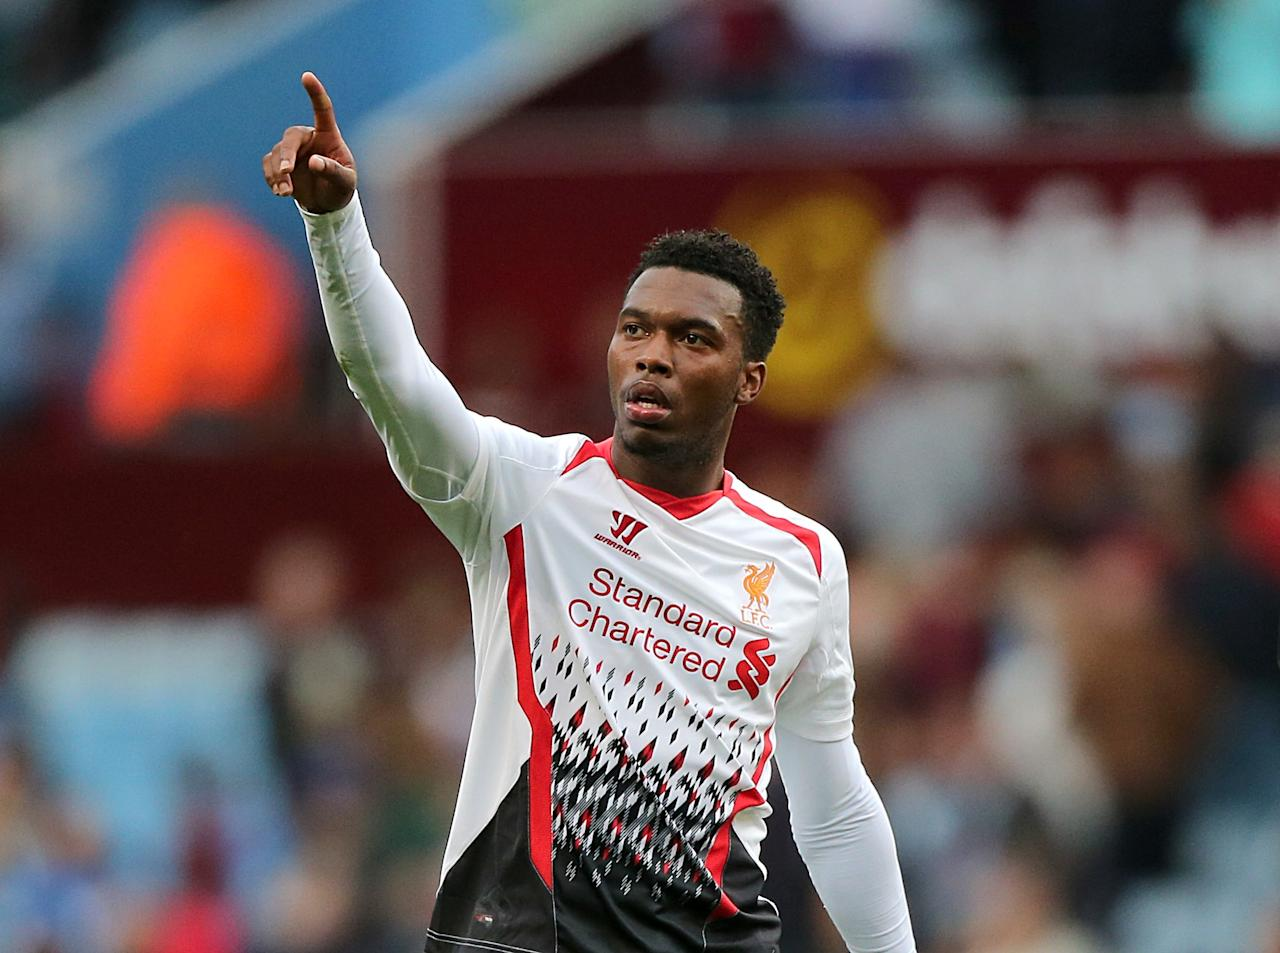 *ALTERNATE CROP* Liverpool's Daniel Sturridge celebrates after the final whistle